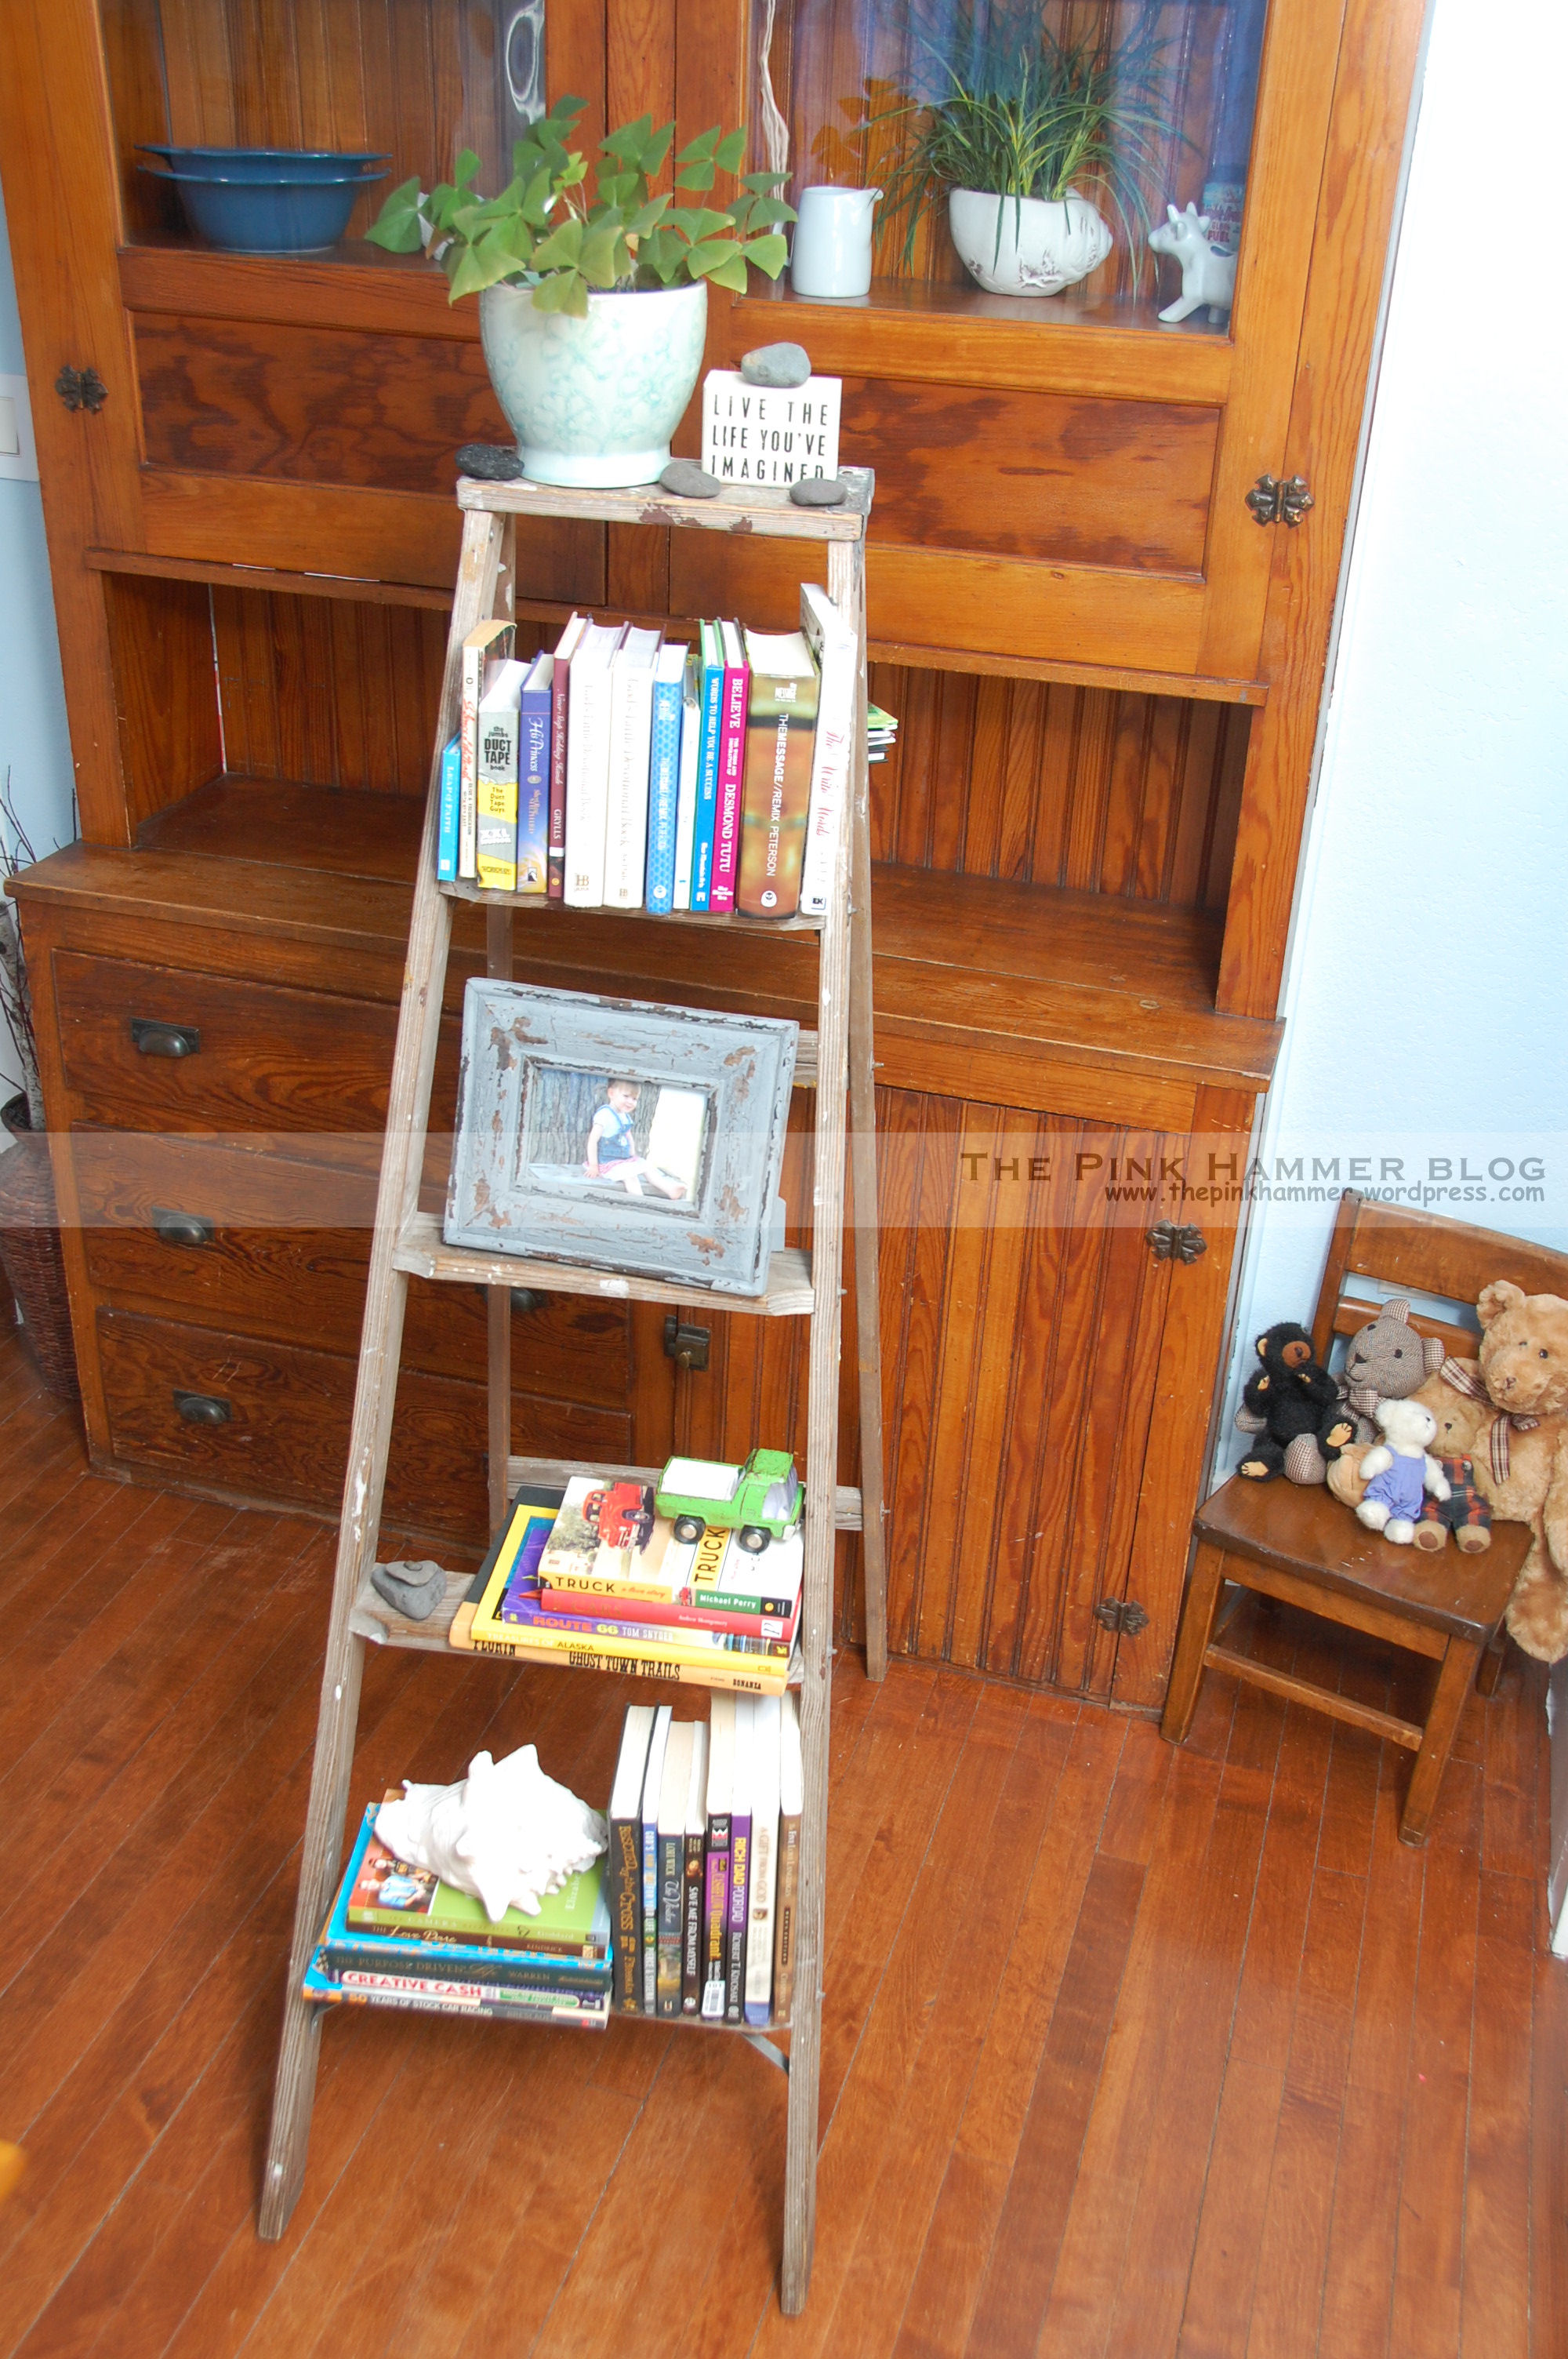 charming ladder bookshelf on wooden floor matched with blue wall plus wooden cabinet for home decor ideas